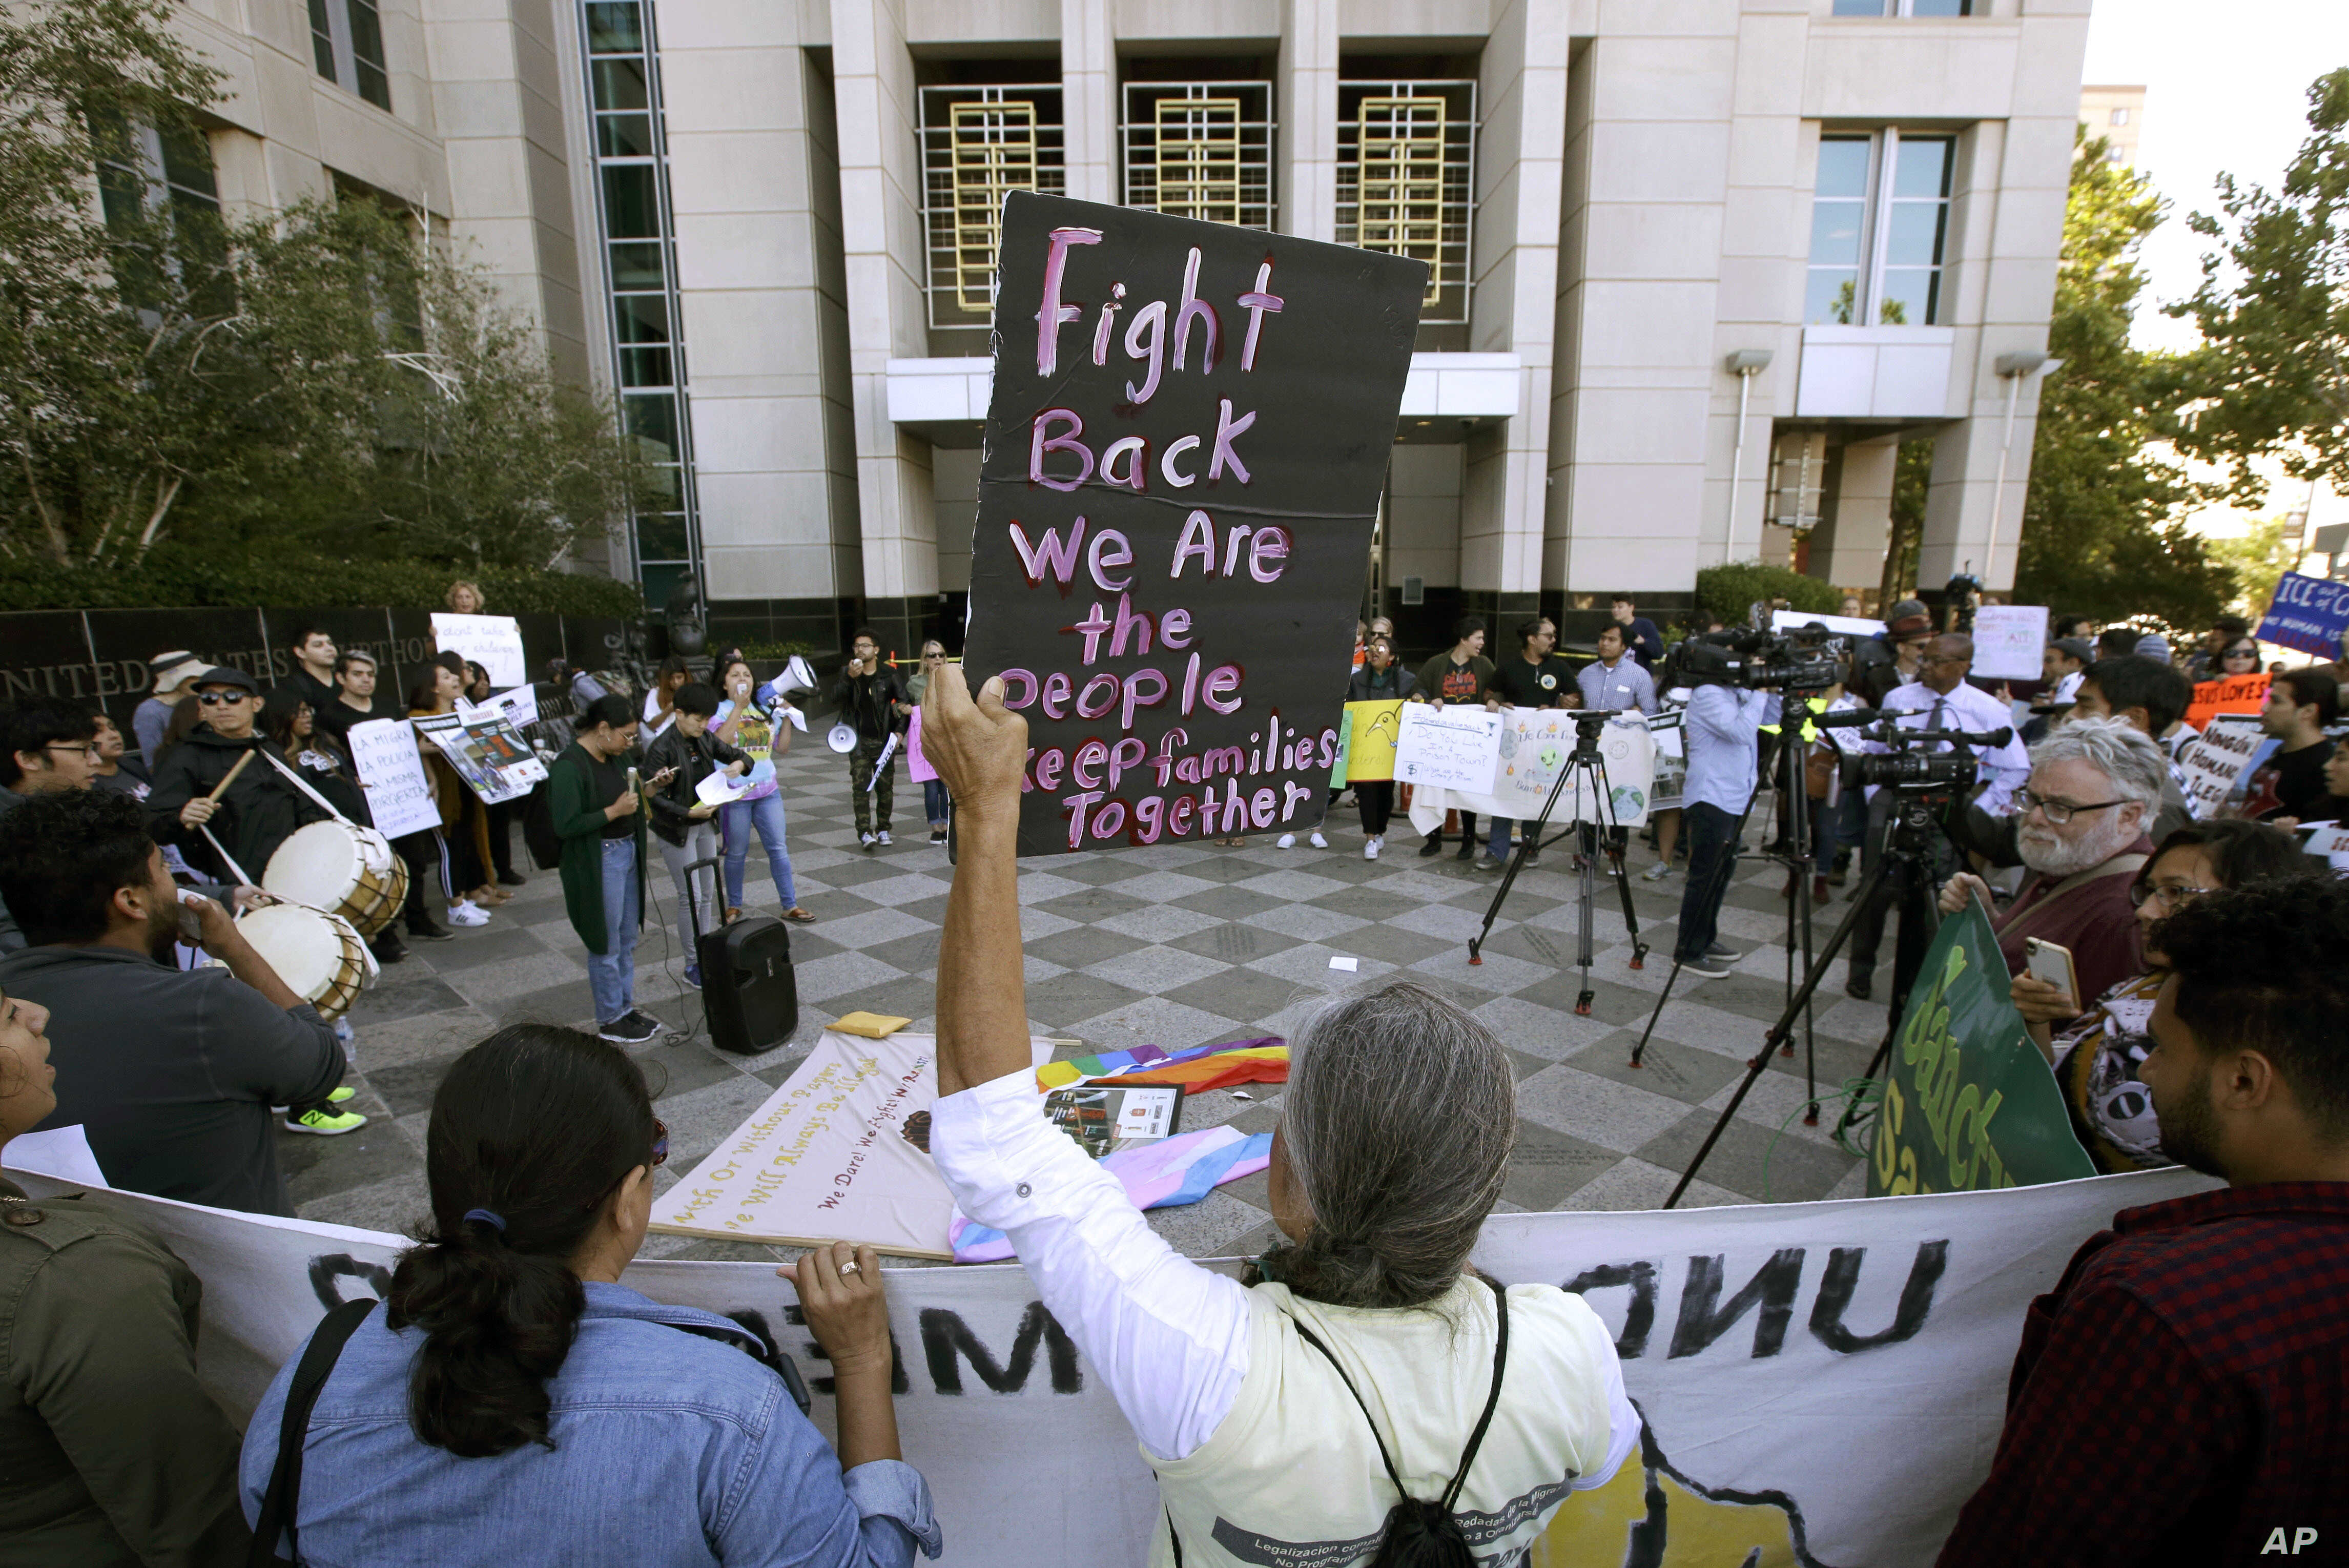 FILE - In this June 20, 2018, photo, protesters demonstrate outside the federal courthouse in Sacramento, Calif., where a judge heard arguments over the U.S. Justice Department's request to block three California laws that extend protections to peopl...